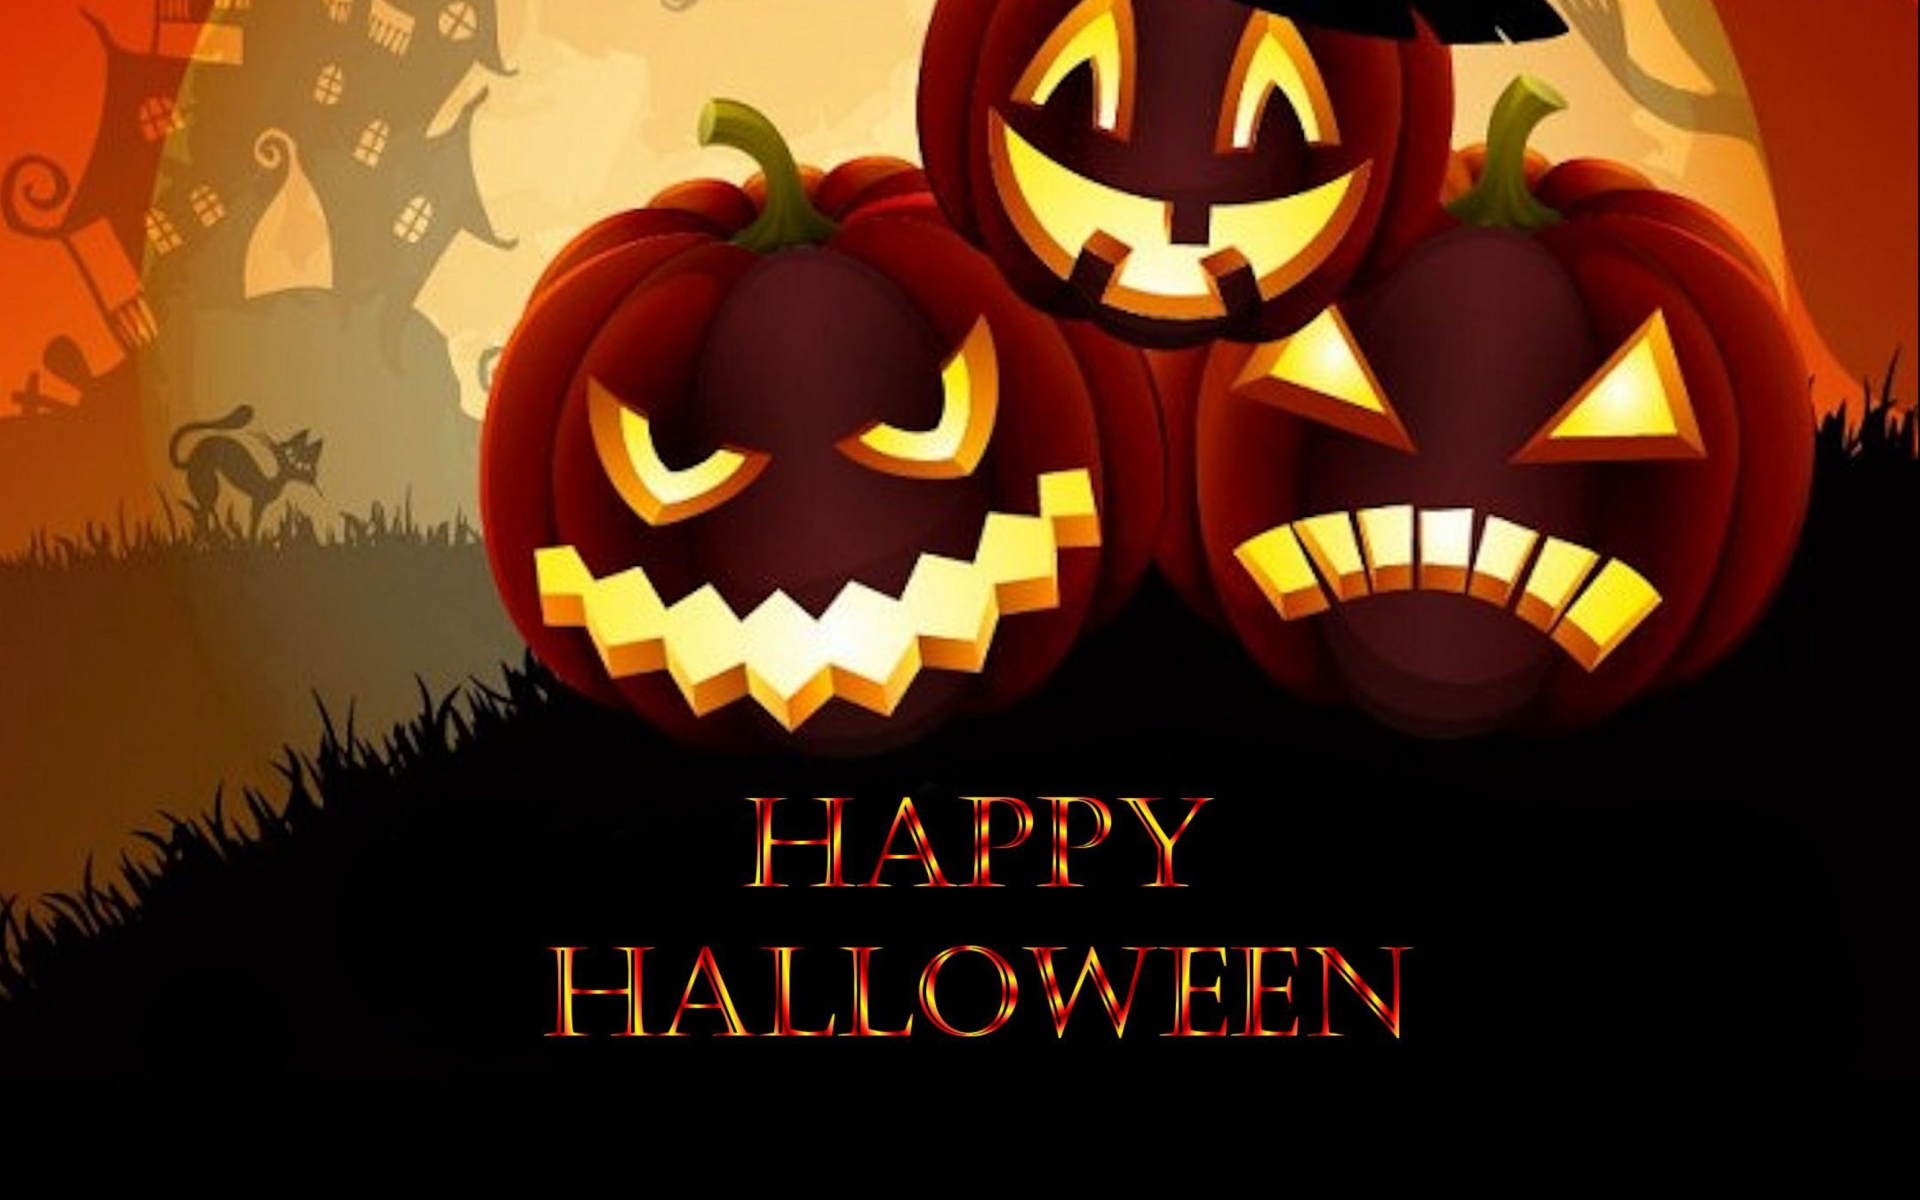 Scary Happy Halloween Pictures Download For Facebook 1920x1200